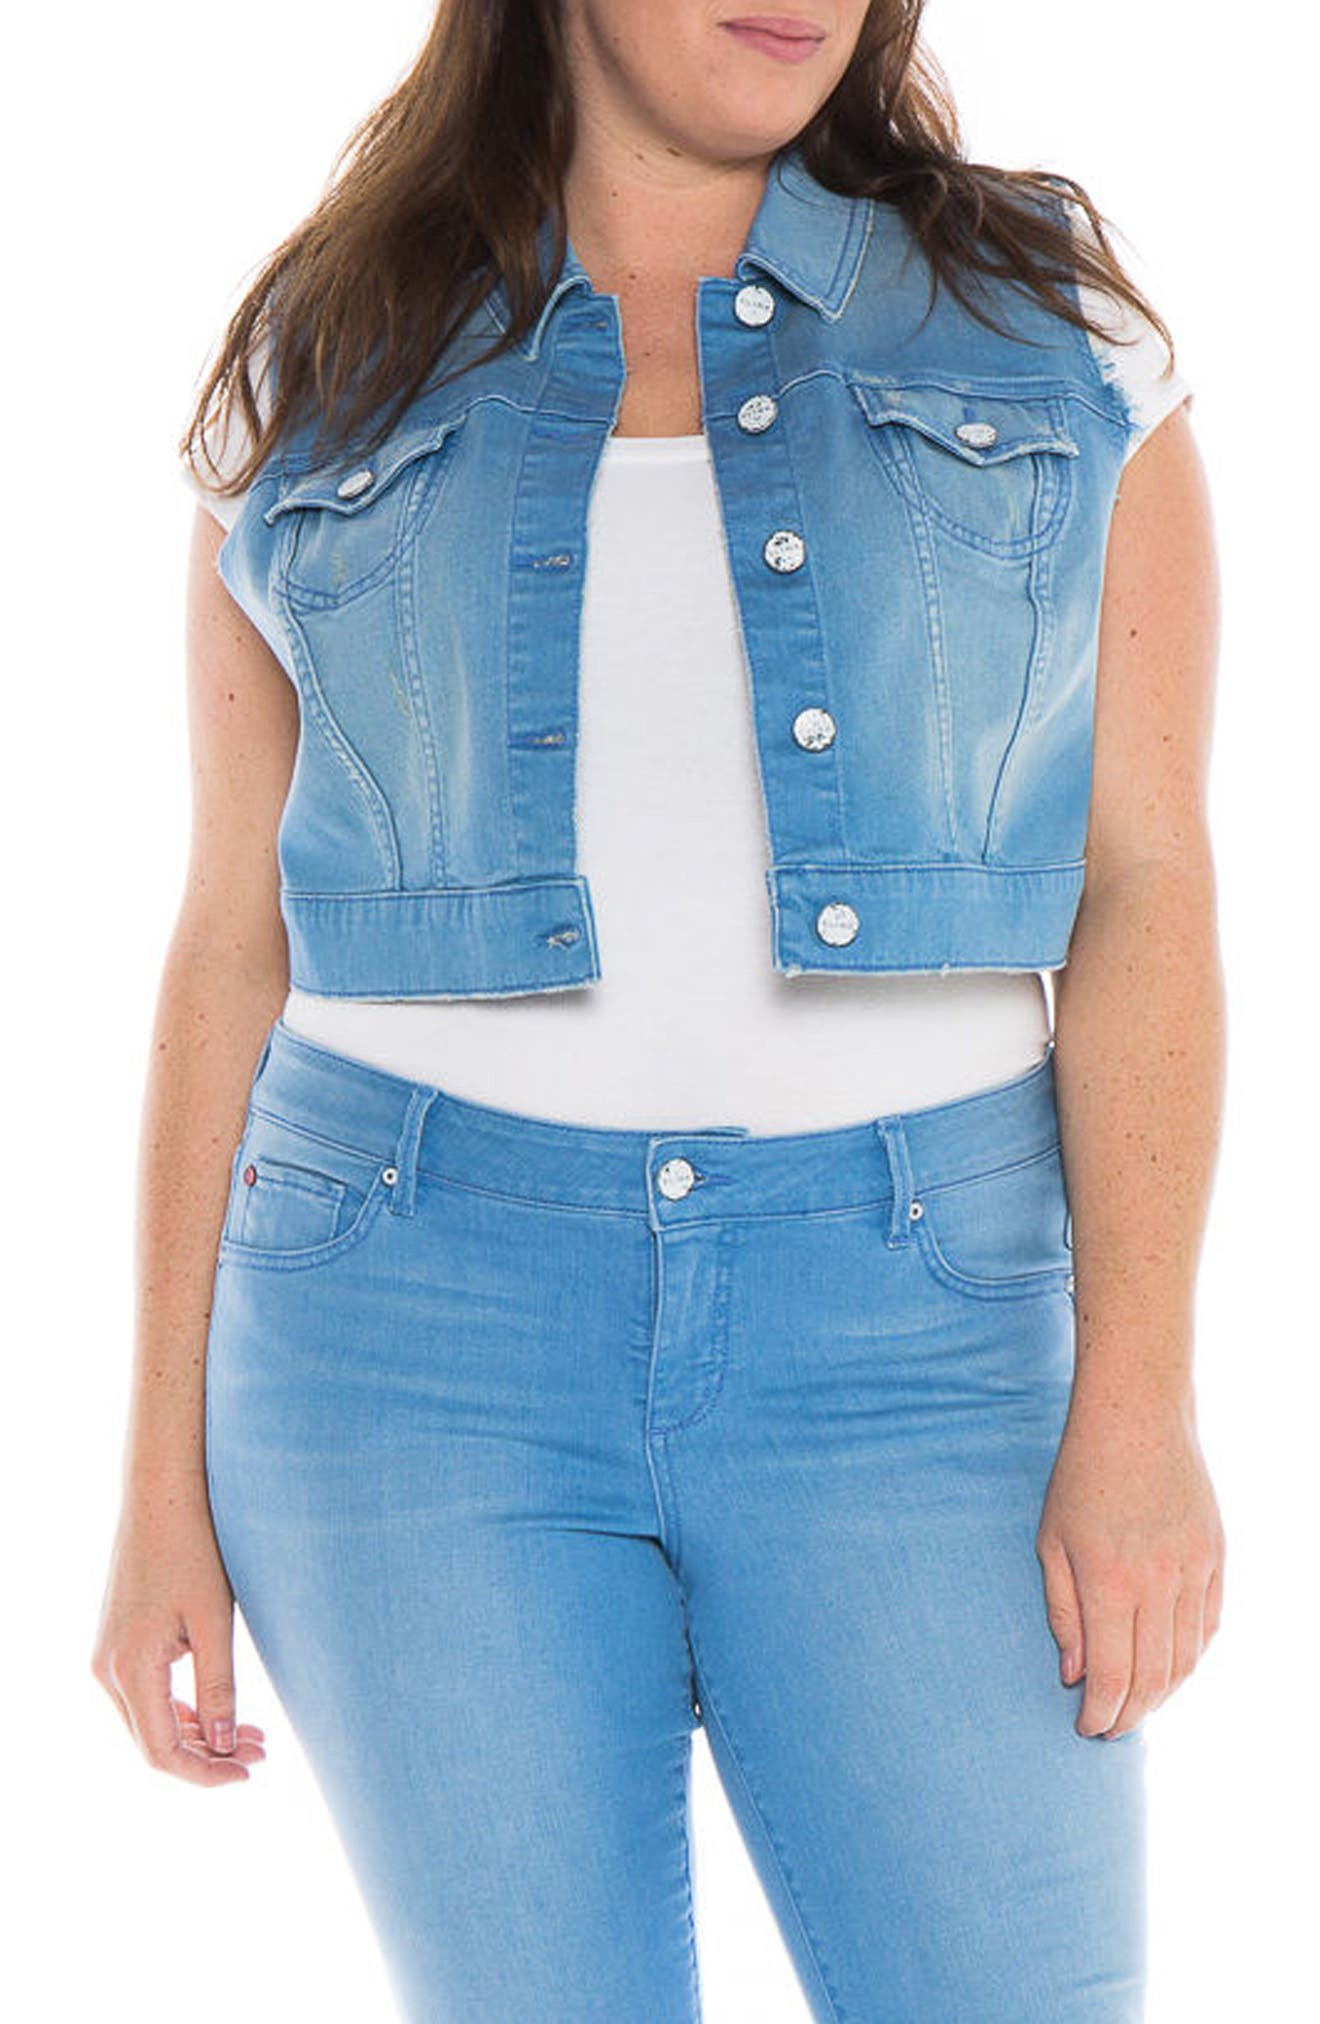 SLINK Jeans Crop Denim Vest (Plus Size)